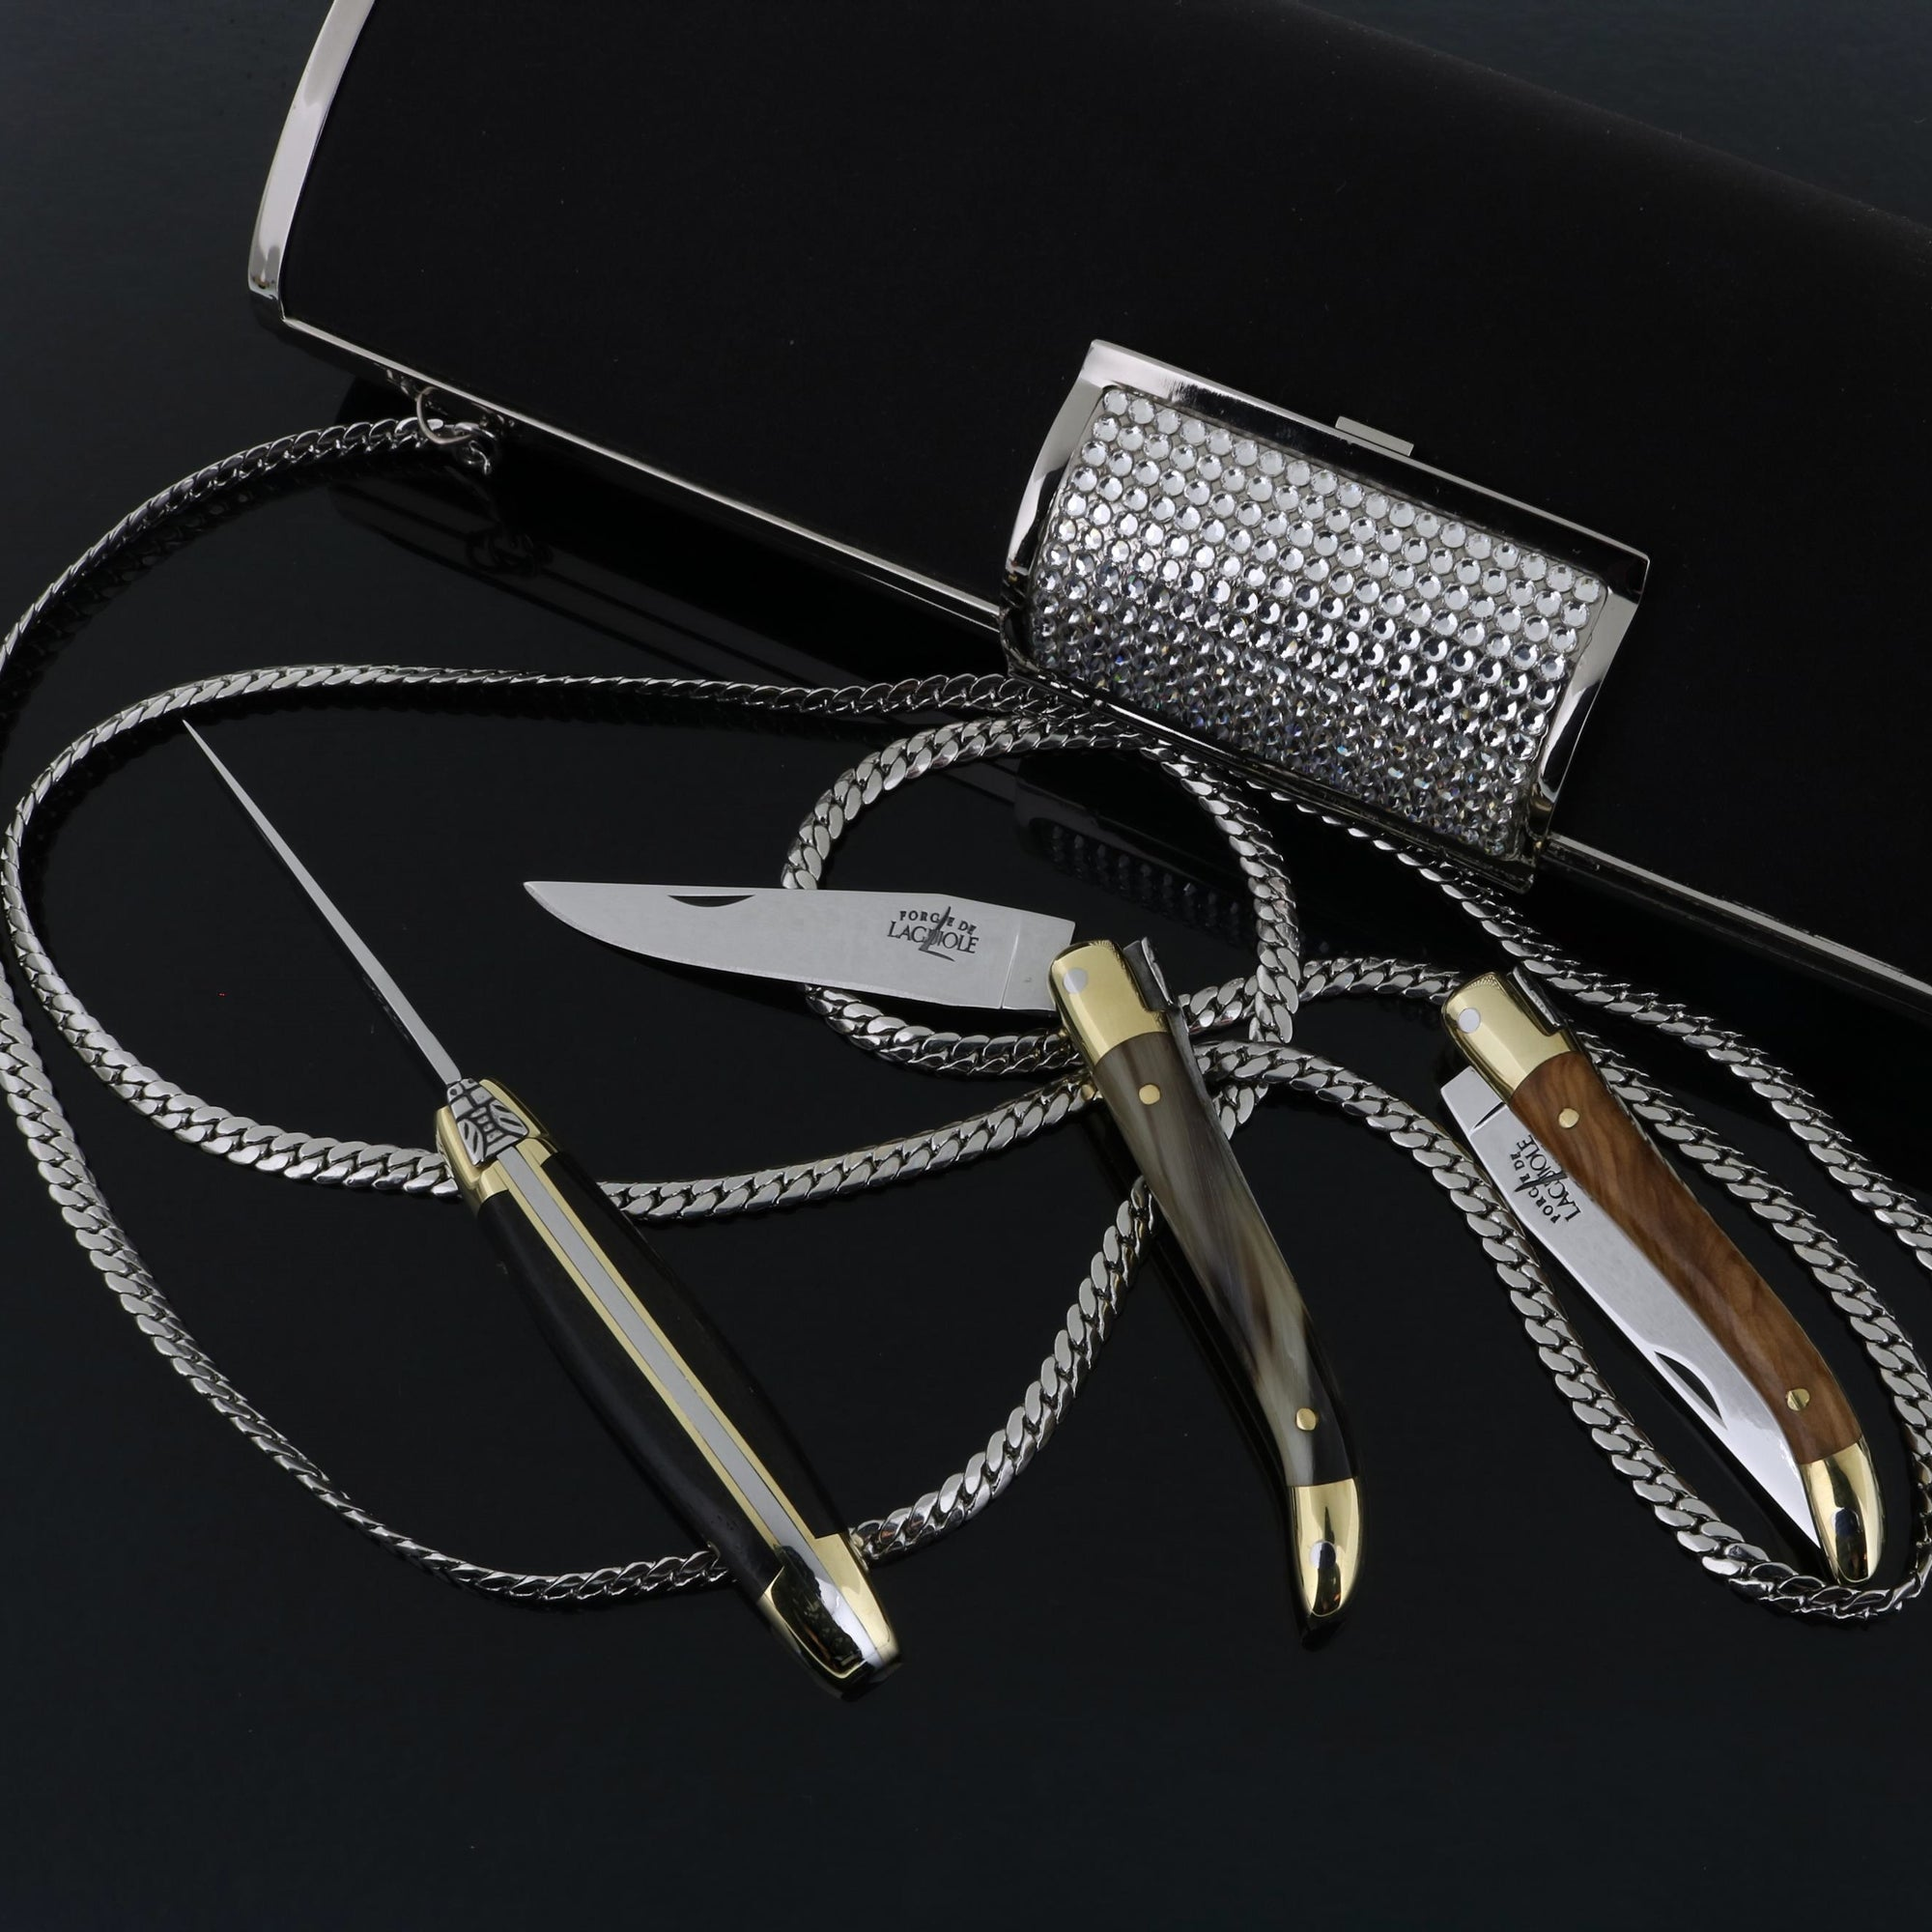 Black lady's purse with 3 small Laguiole pocket knives on a black background